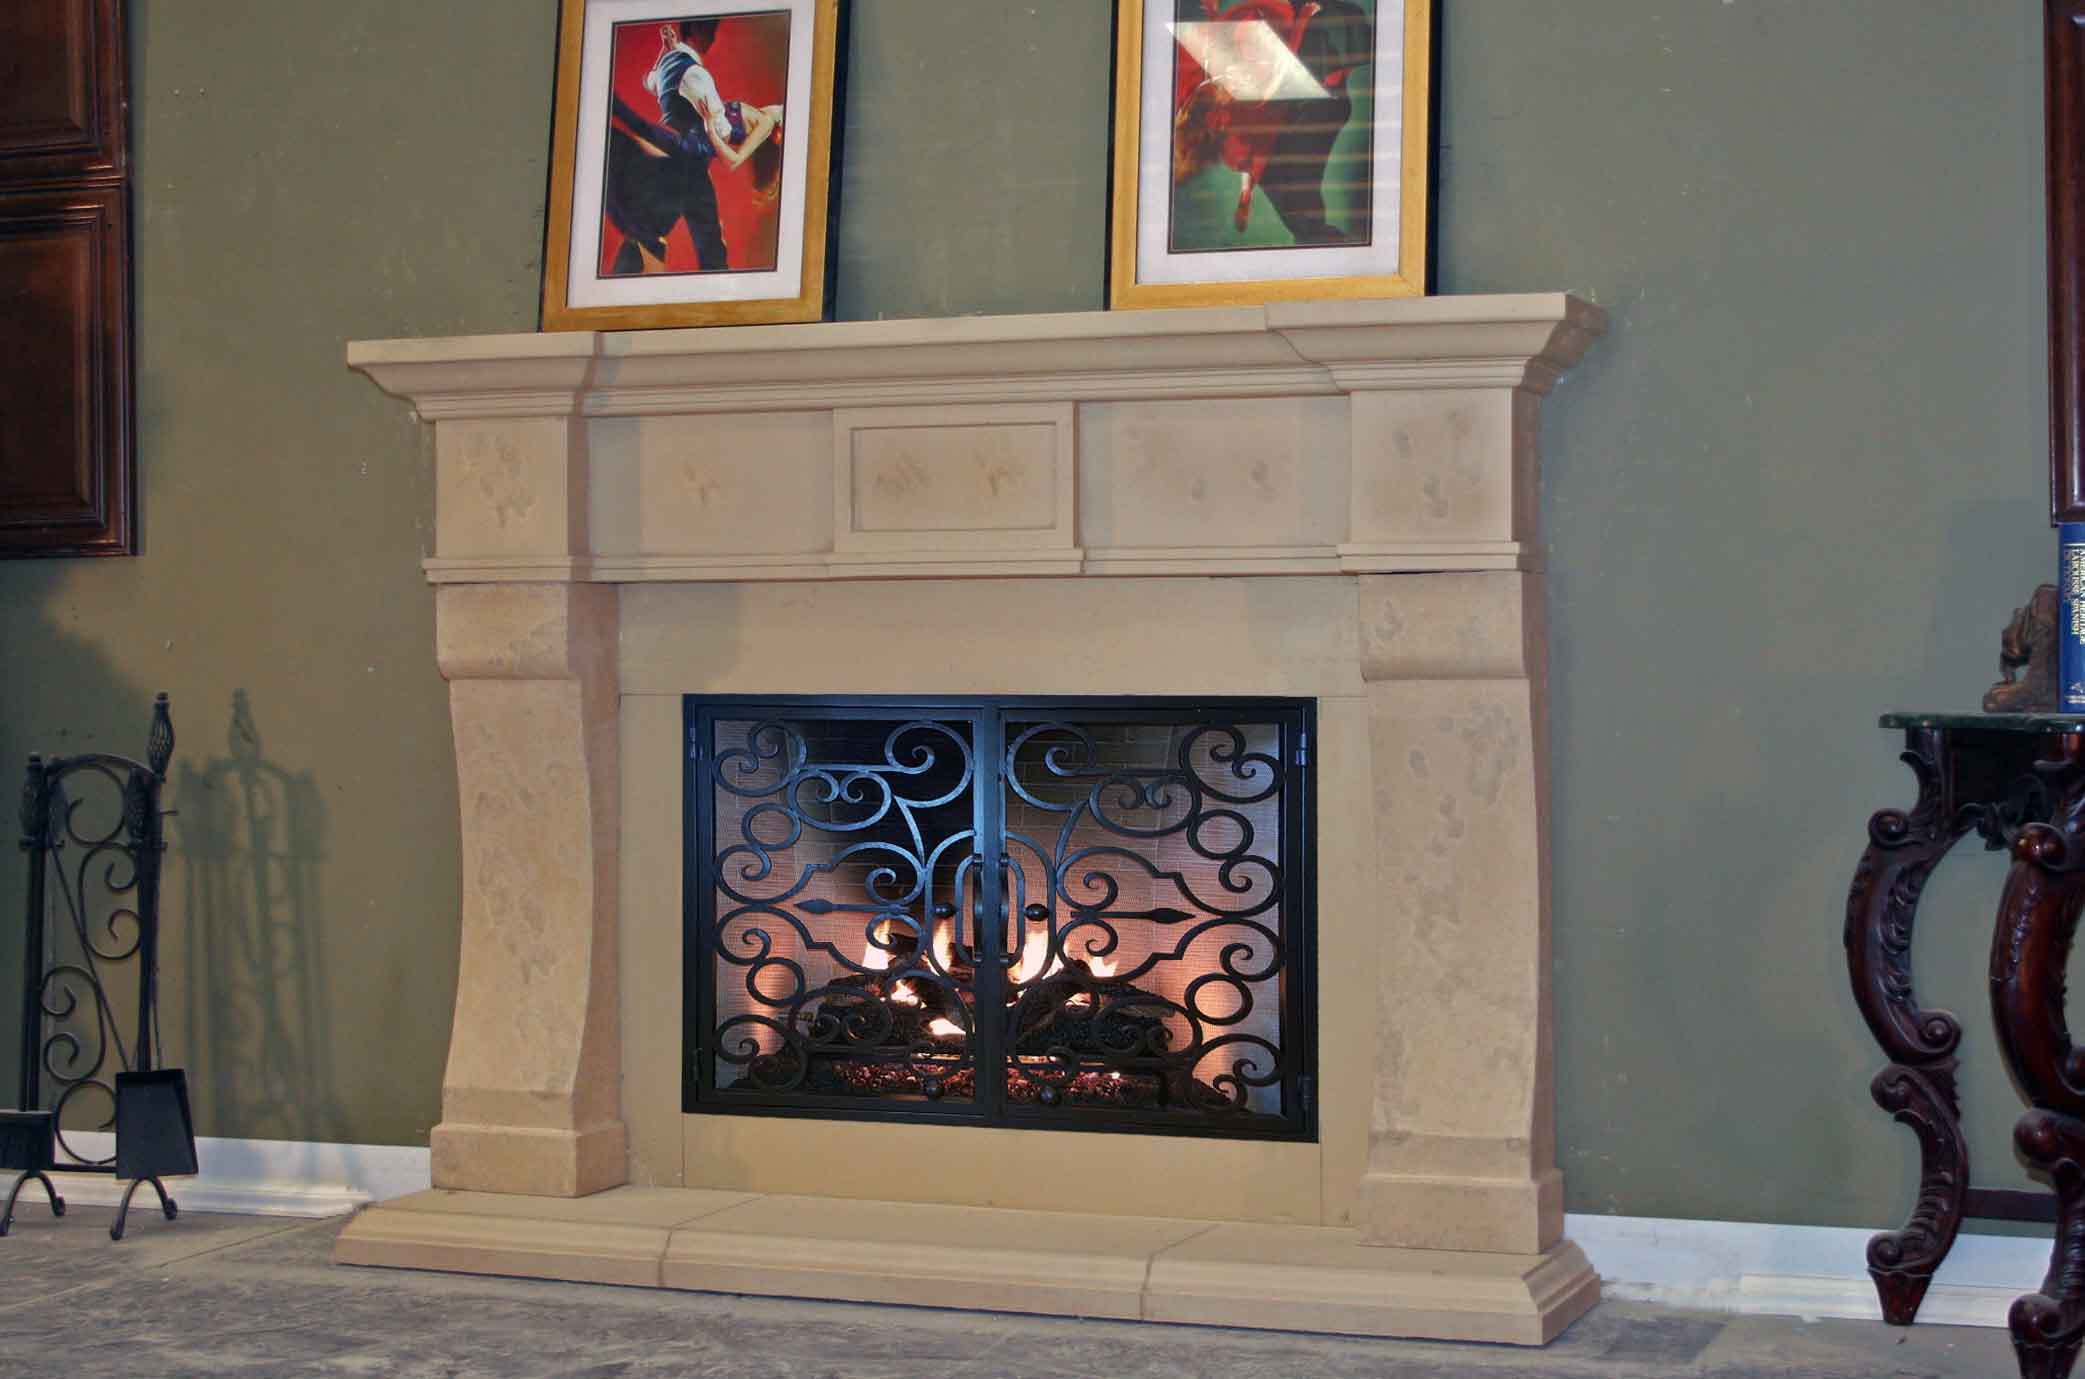 Mt234 Fireplace Mantels Fireplace Surrounds Iron Fireplace Doors And Screens In San Diego